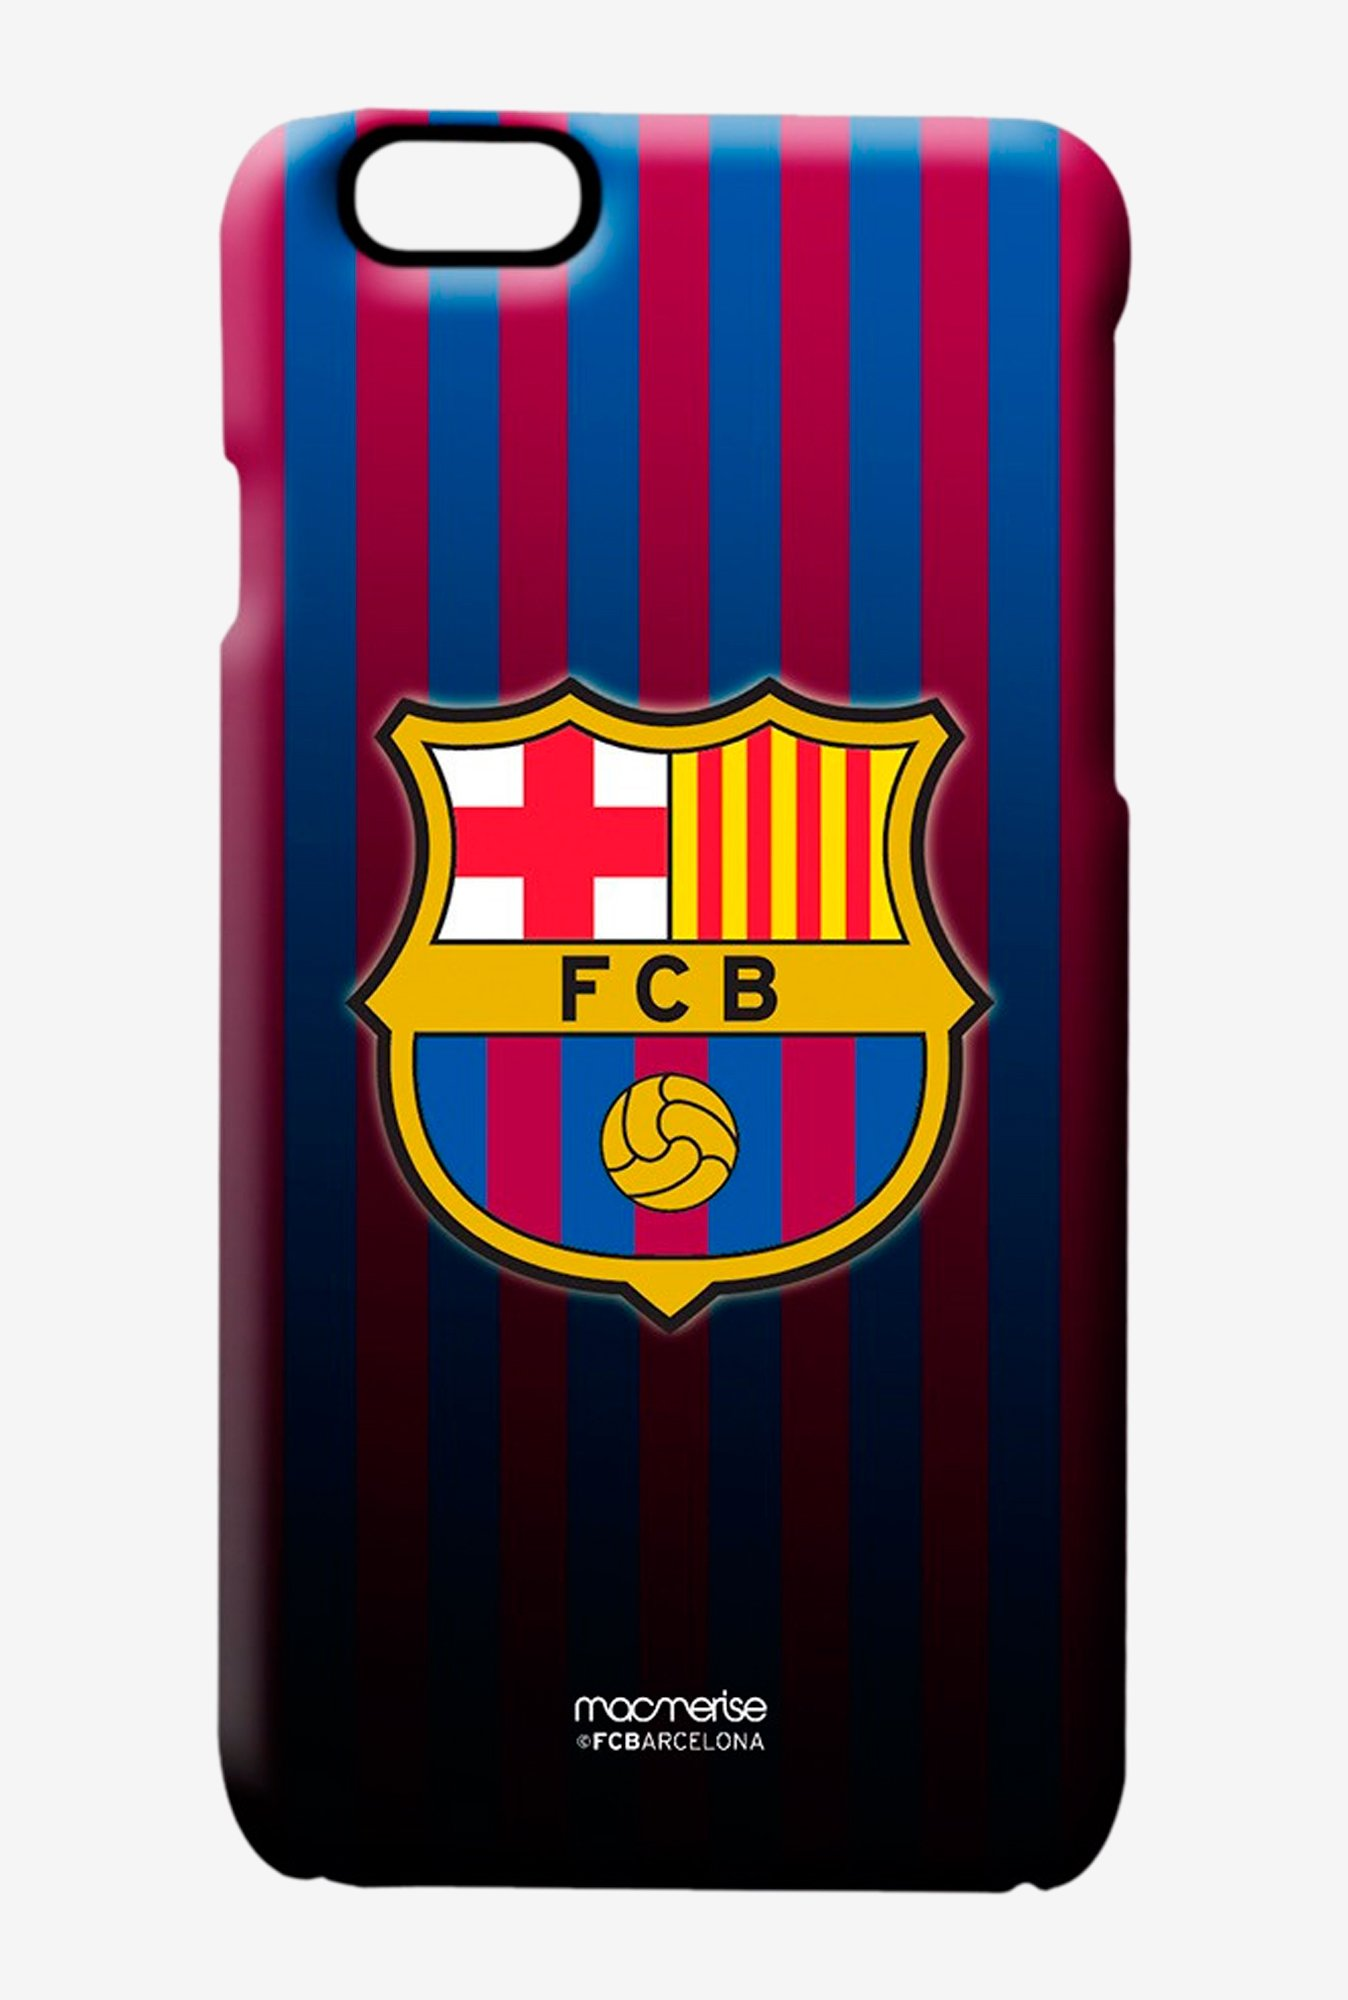 Macmerise FCB Crest Pro Case for iPhone 6S